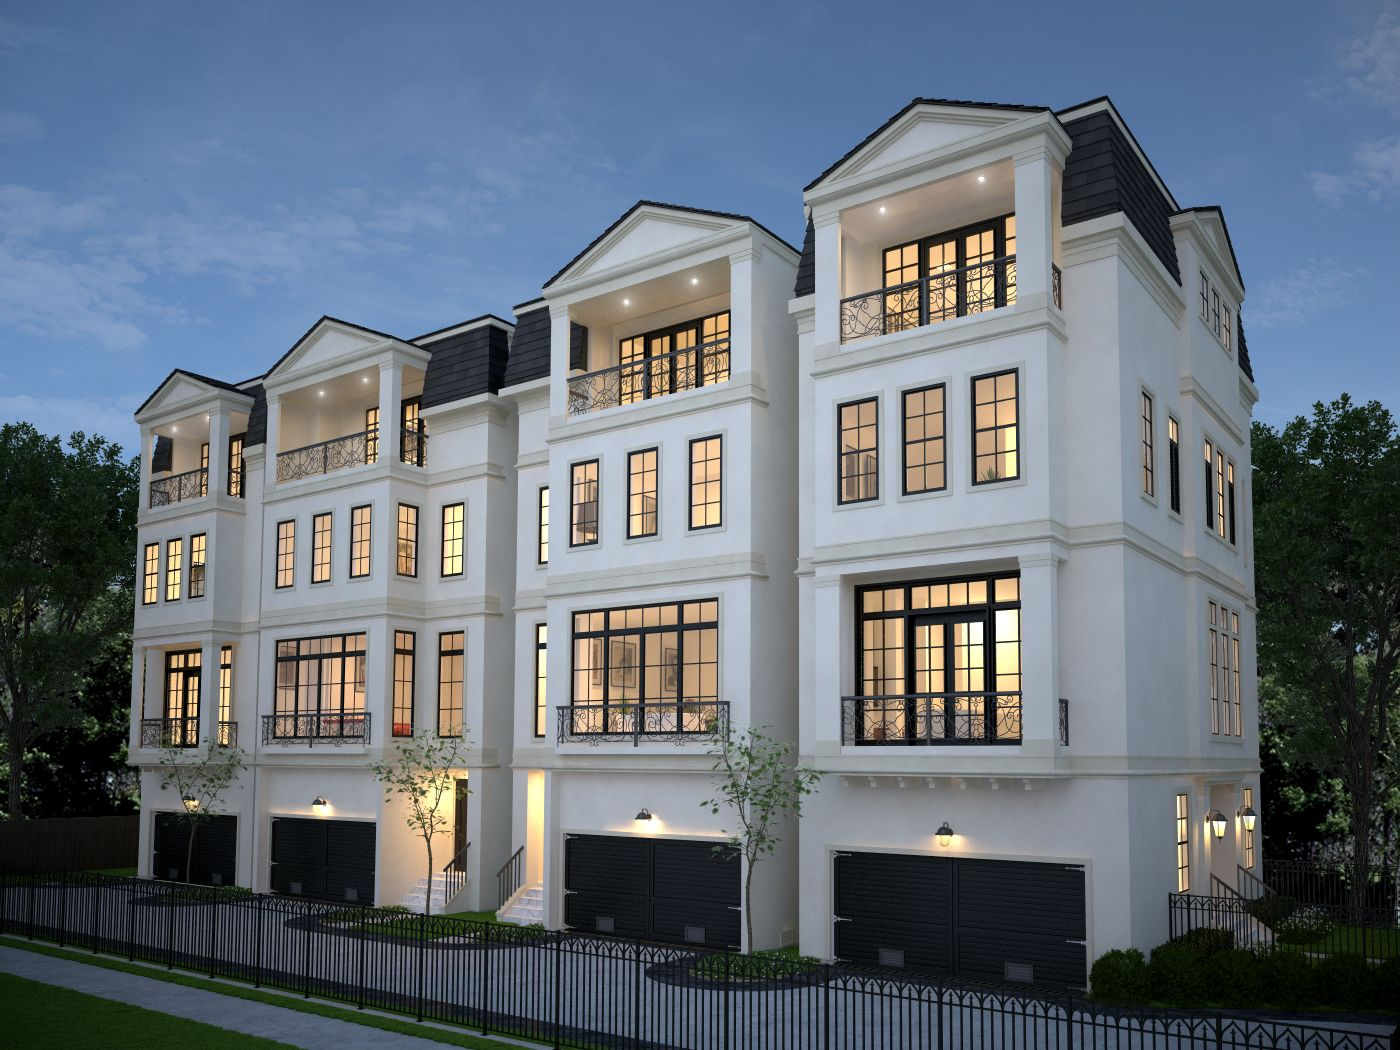 Fabulous Four 4 Story Townhomes In Houston By Preston Wood Assoc Download Free Architecture Designs Scobabritishbridgeorg